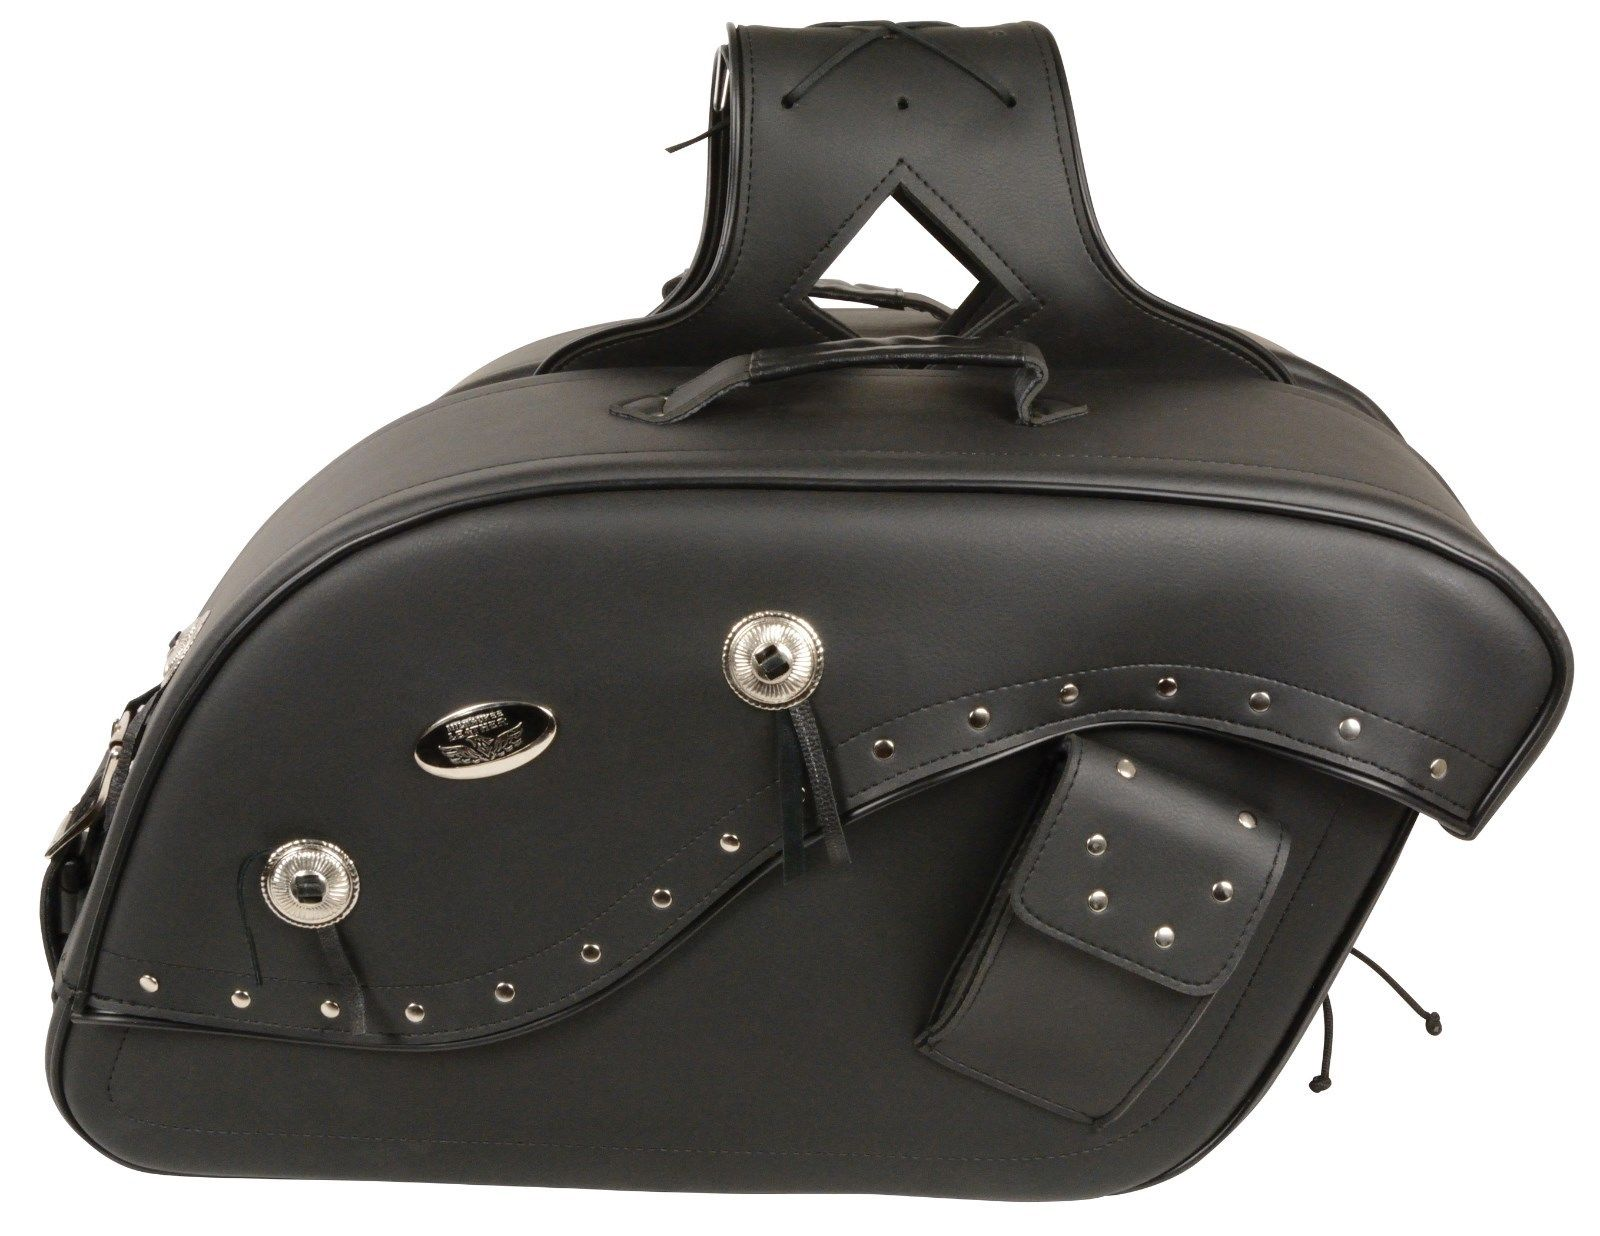 Best motorcycle saddlebag